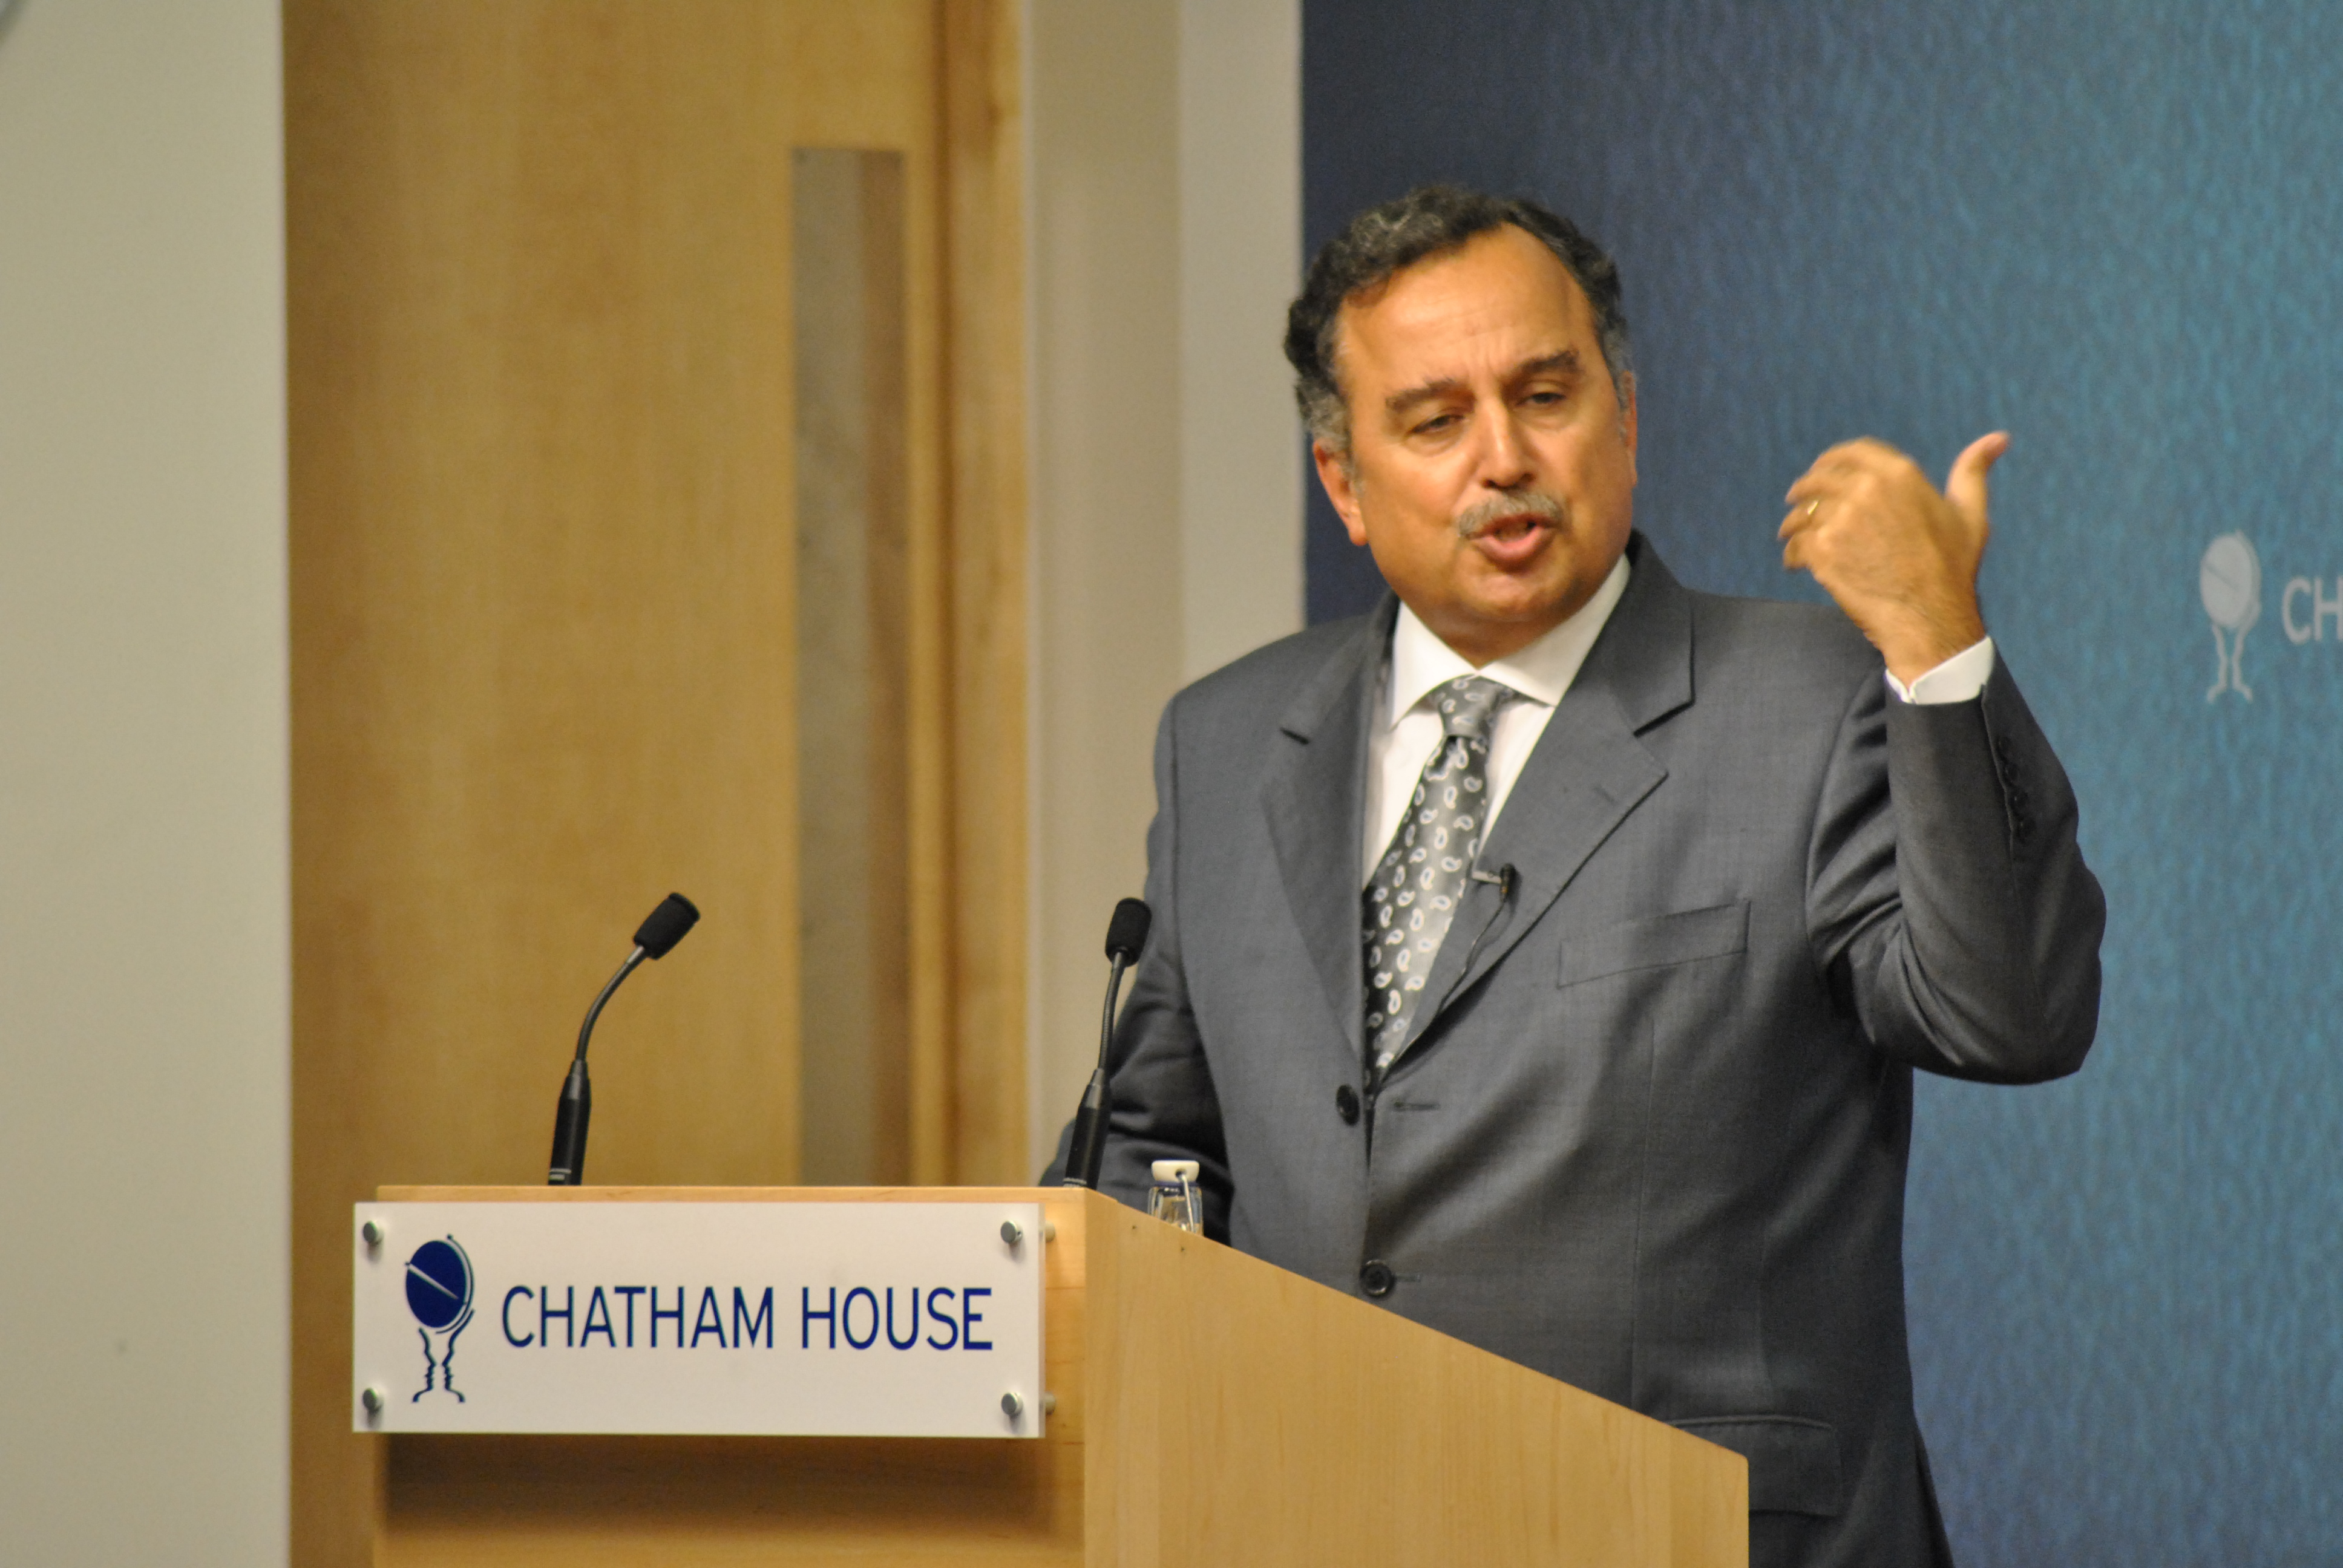 Nabil Fahmy, then Dean at the School of Public Affairs, American University in Cairo in 2011. Chatham House Photo